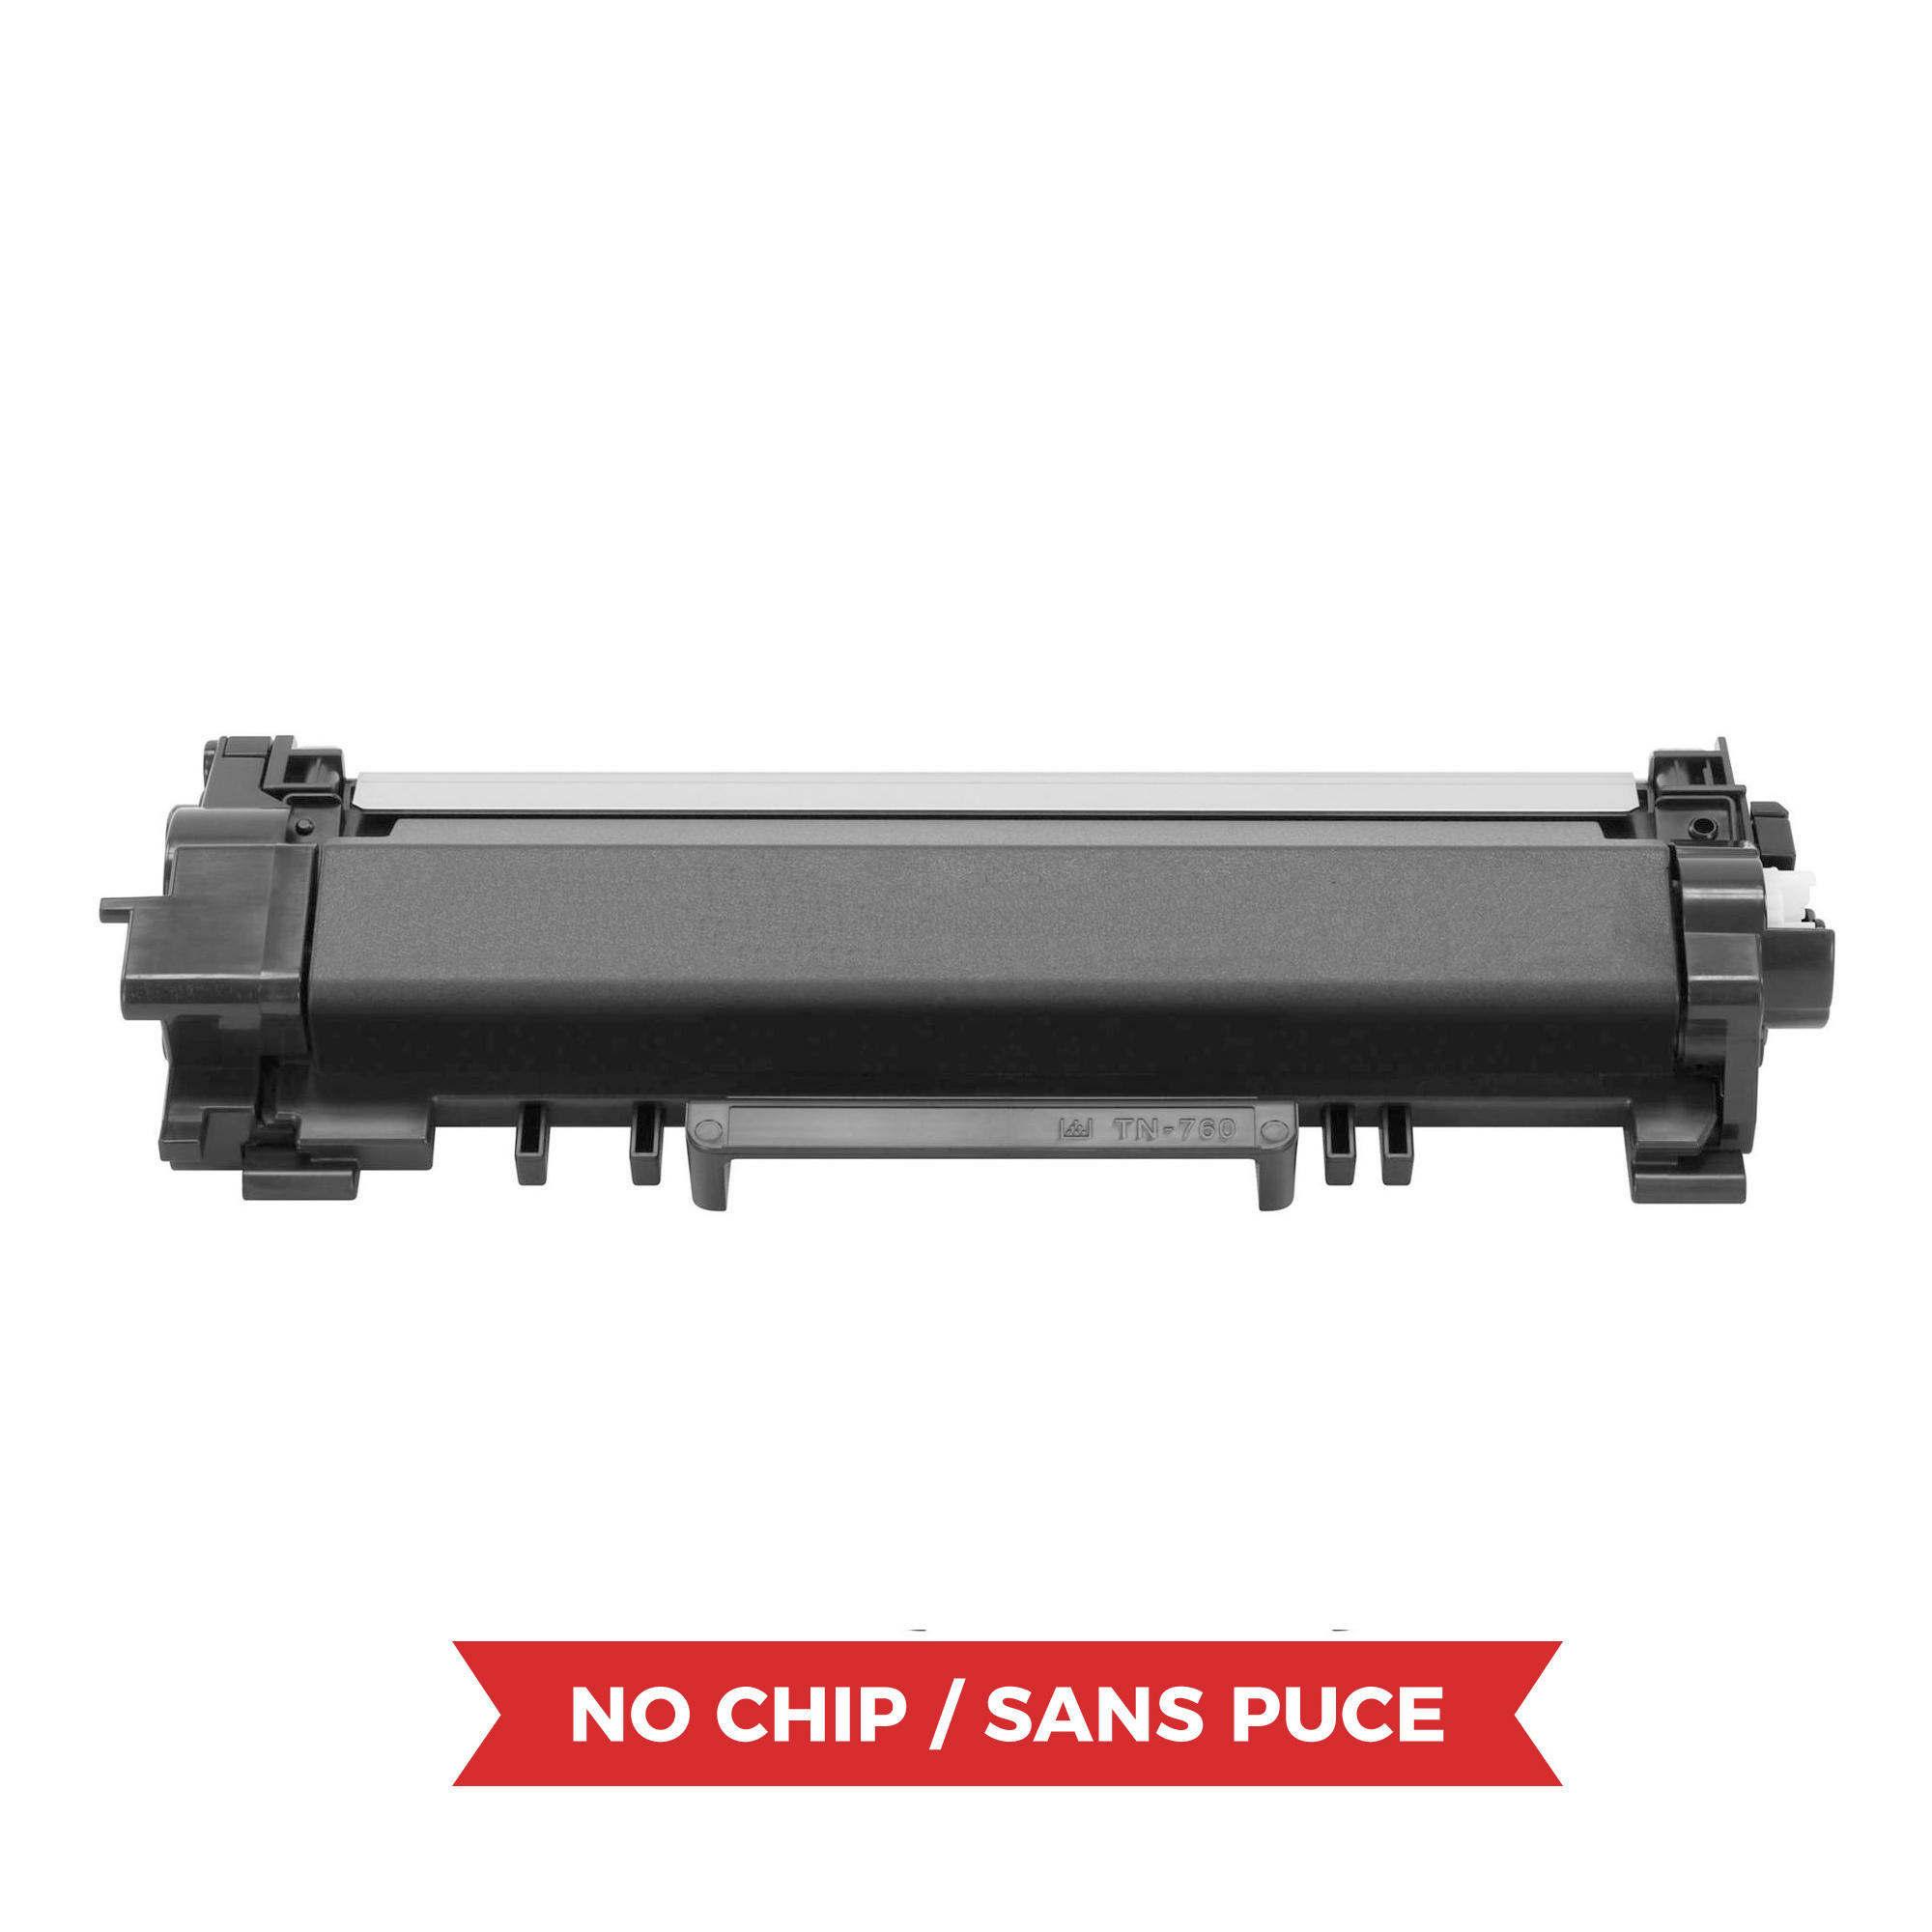 Brother TN760 Compatible Black Toner Cartridge High Yield - No Chip - Economical Box